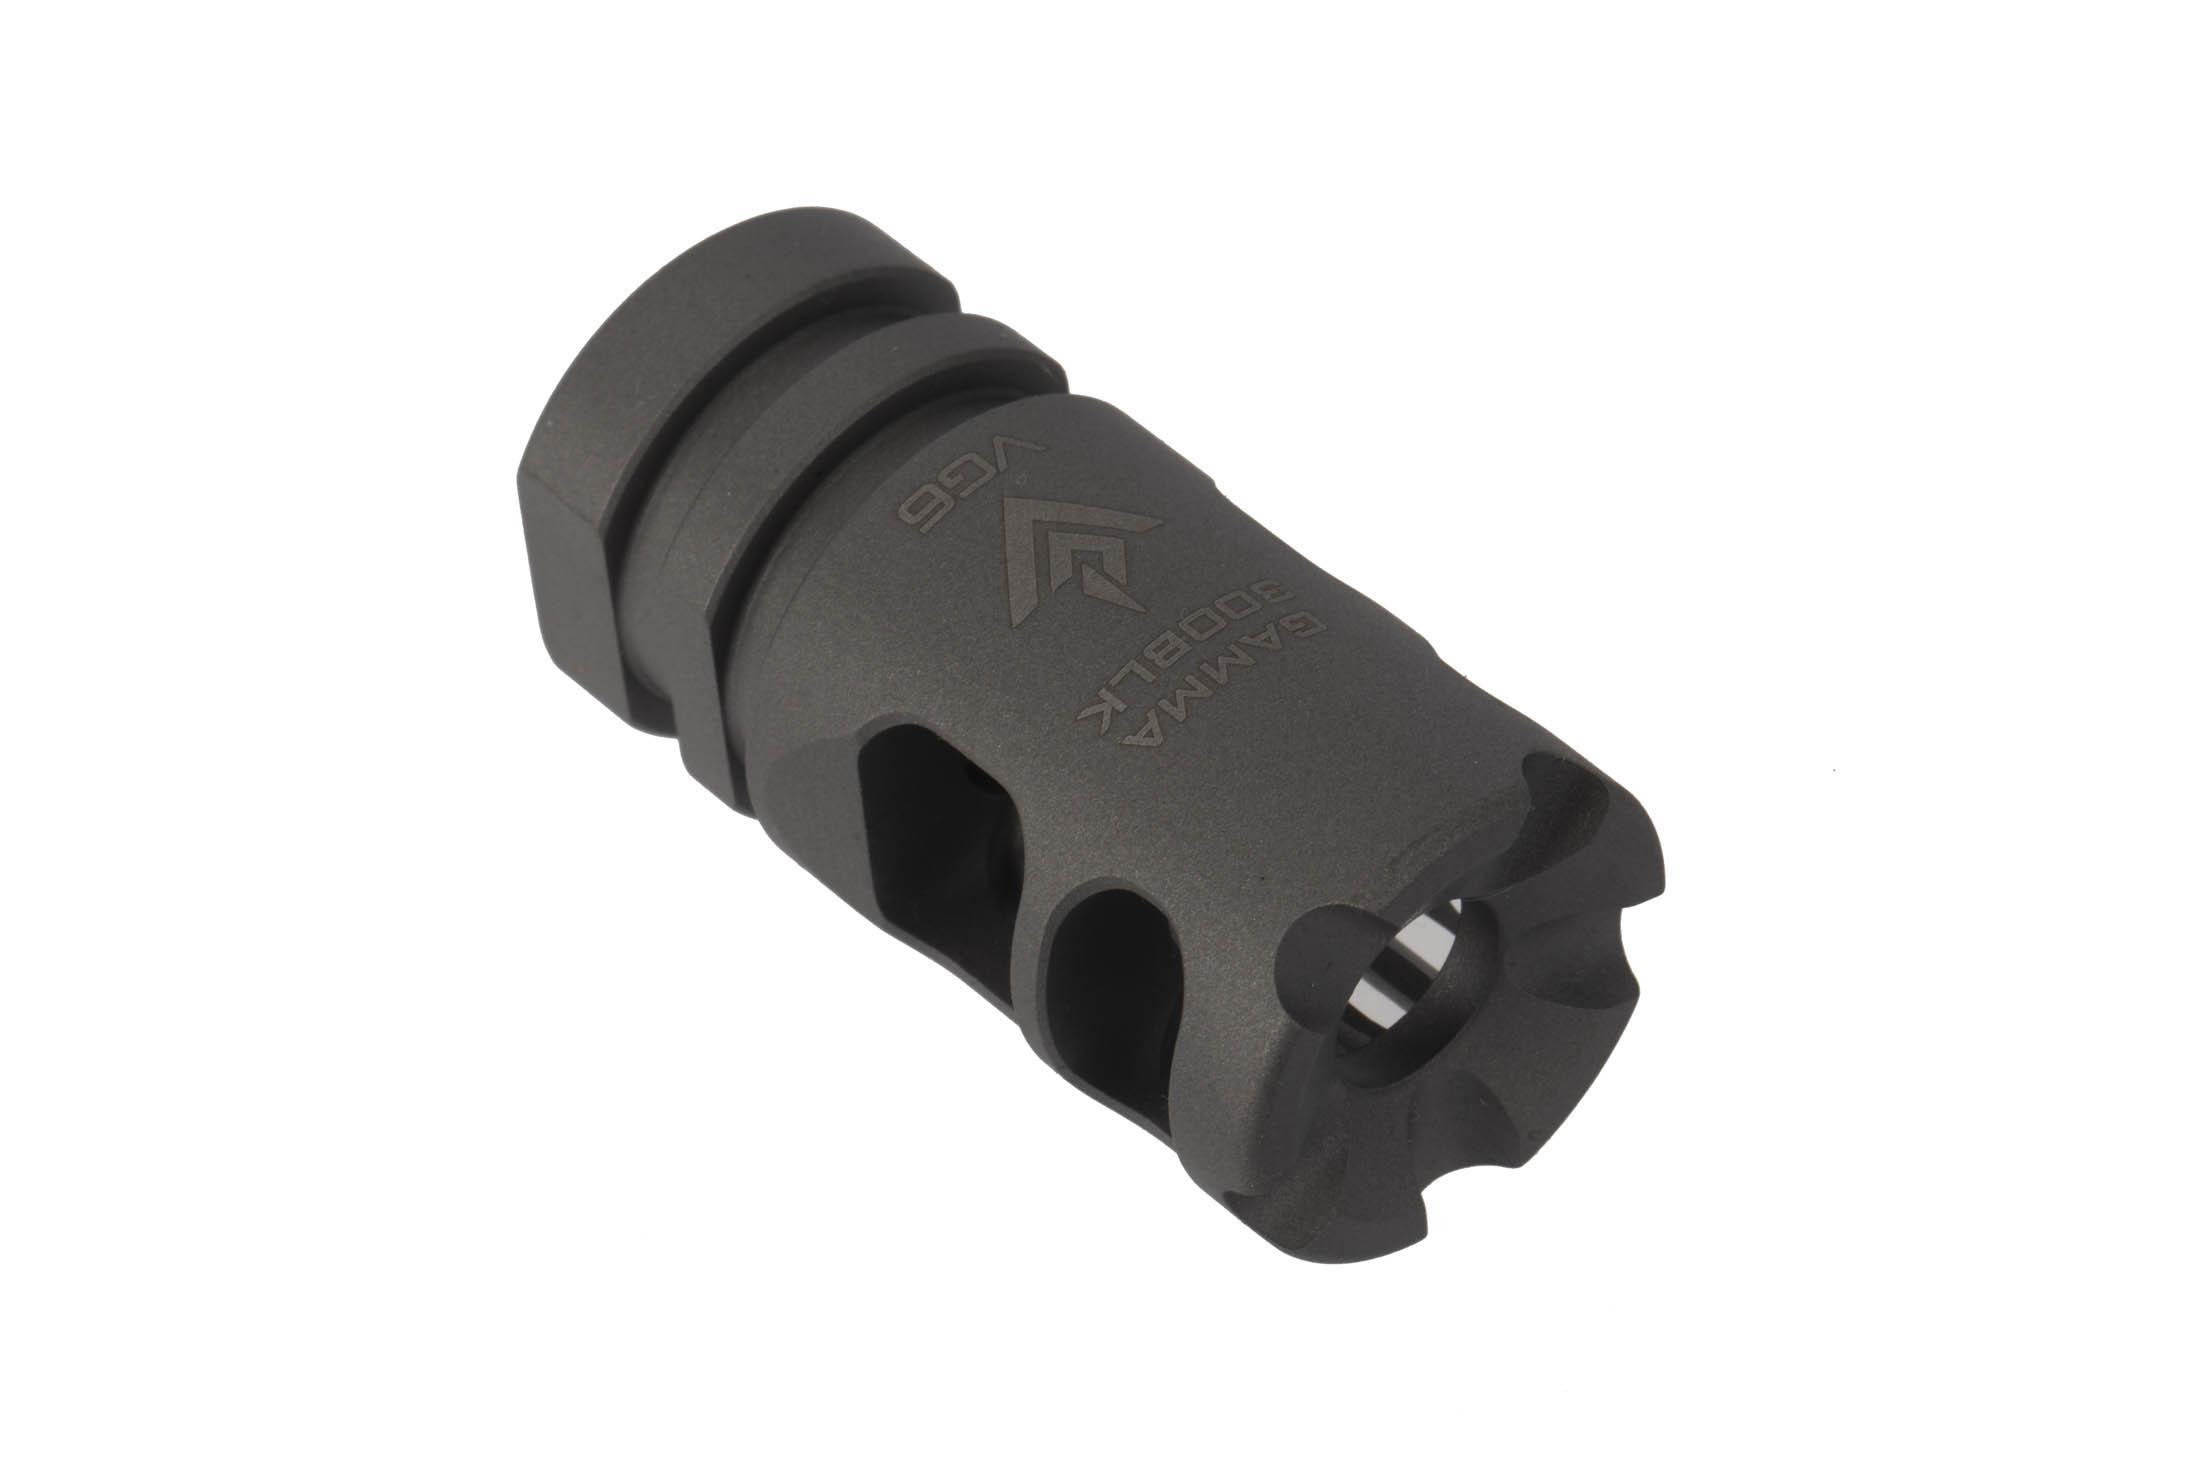 The VG6 Gamma 300BLK High Performance Muzzle Brake is machined from 17-4ph heat treated stainless steel